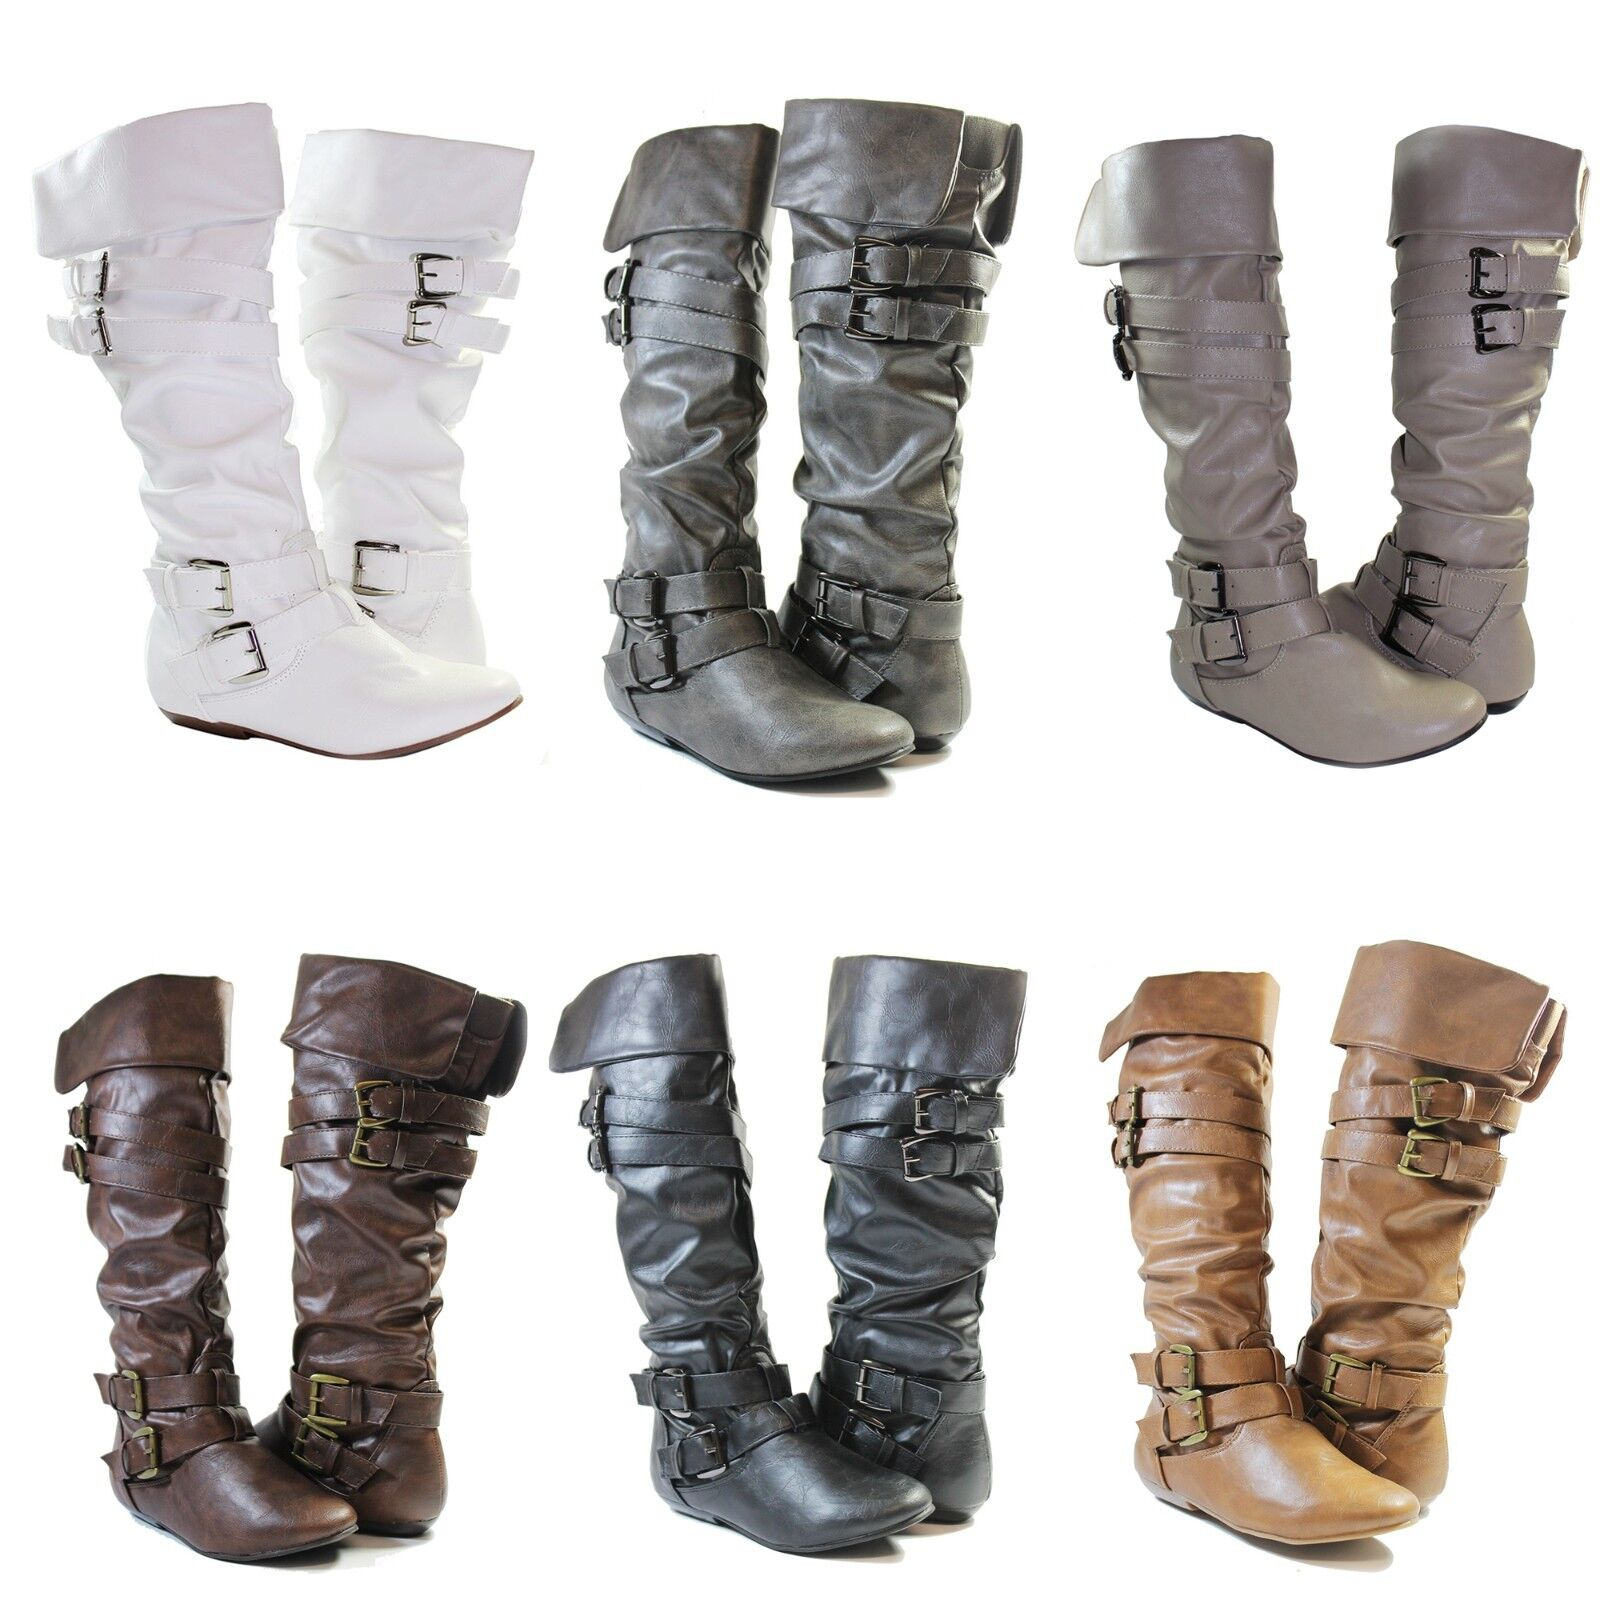 Women's Fashion Boots Cheap Women Riding Boots Slouch